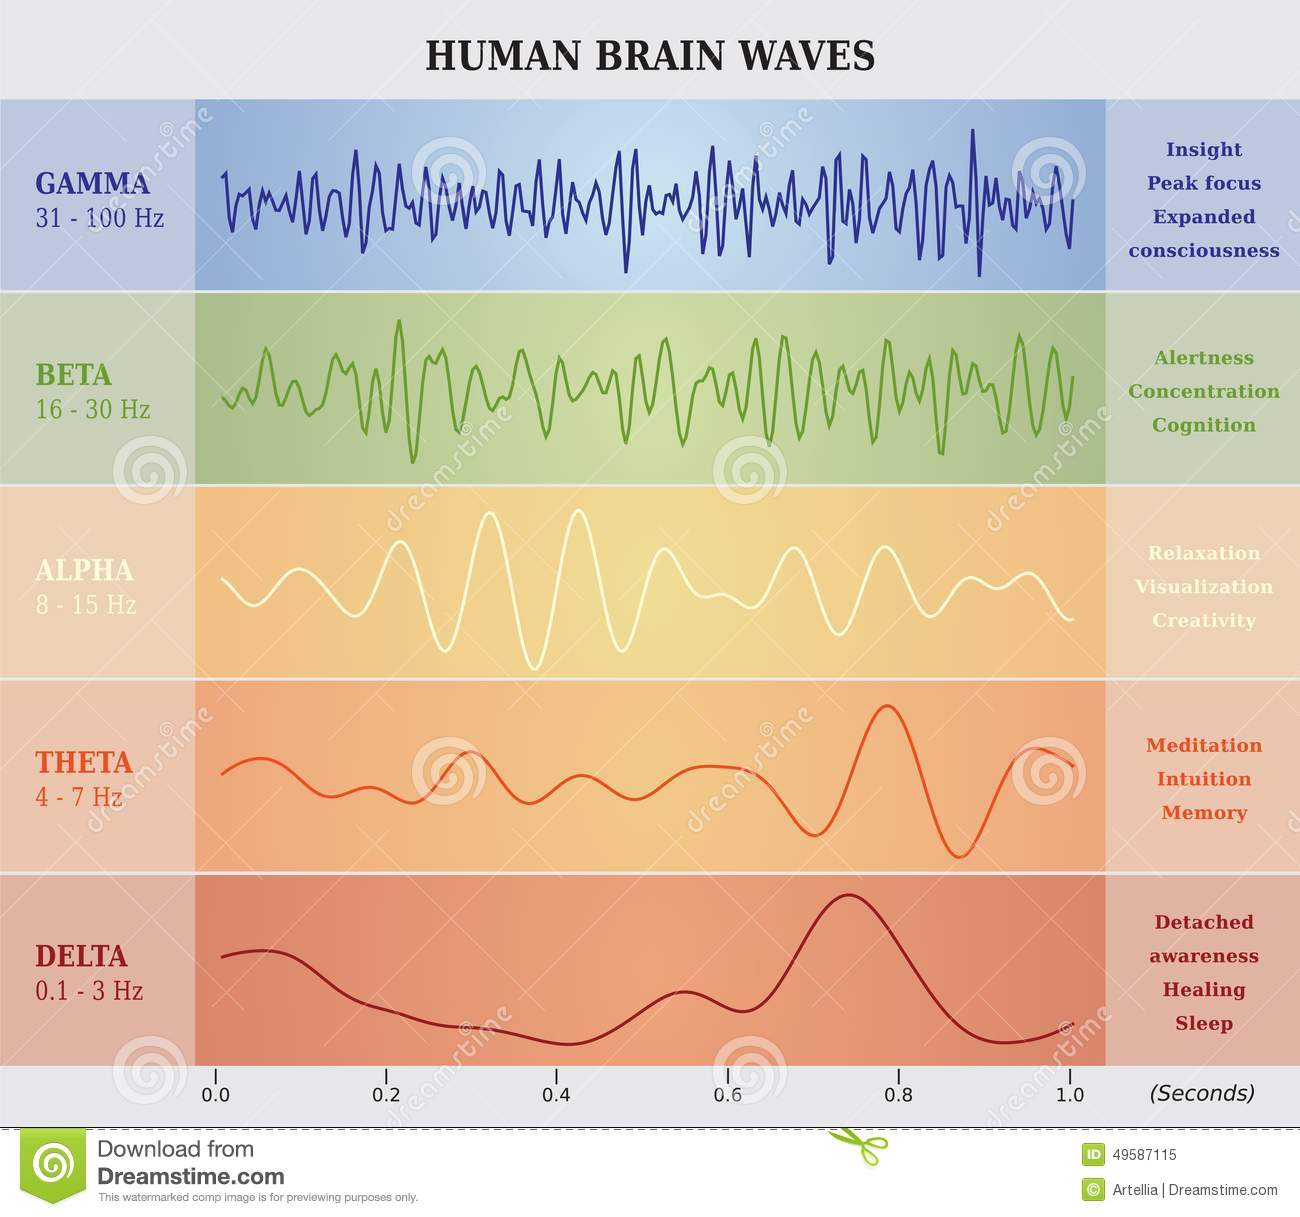 Ser humano brain waves diagramcartailustrao ilustrao do vetor download ser humano brain waves diagramcartailustrao ilustrao do vetor ilustrao de ccuart Images